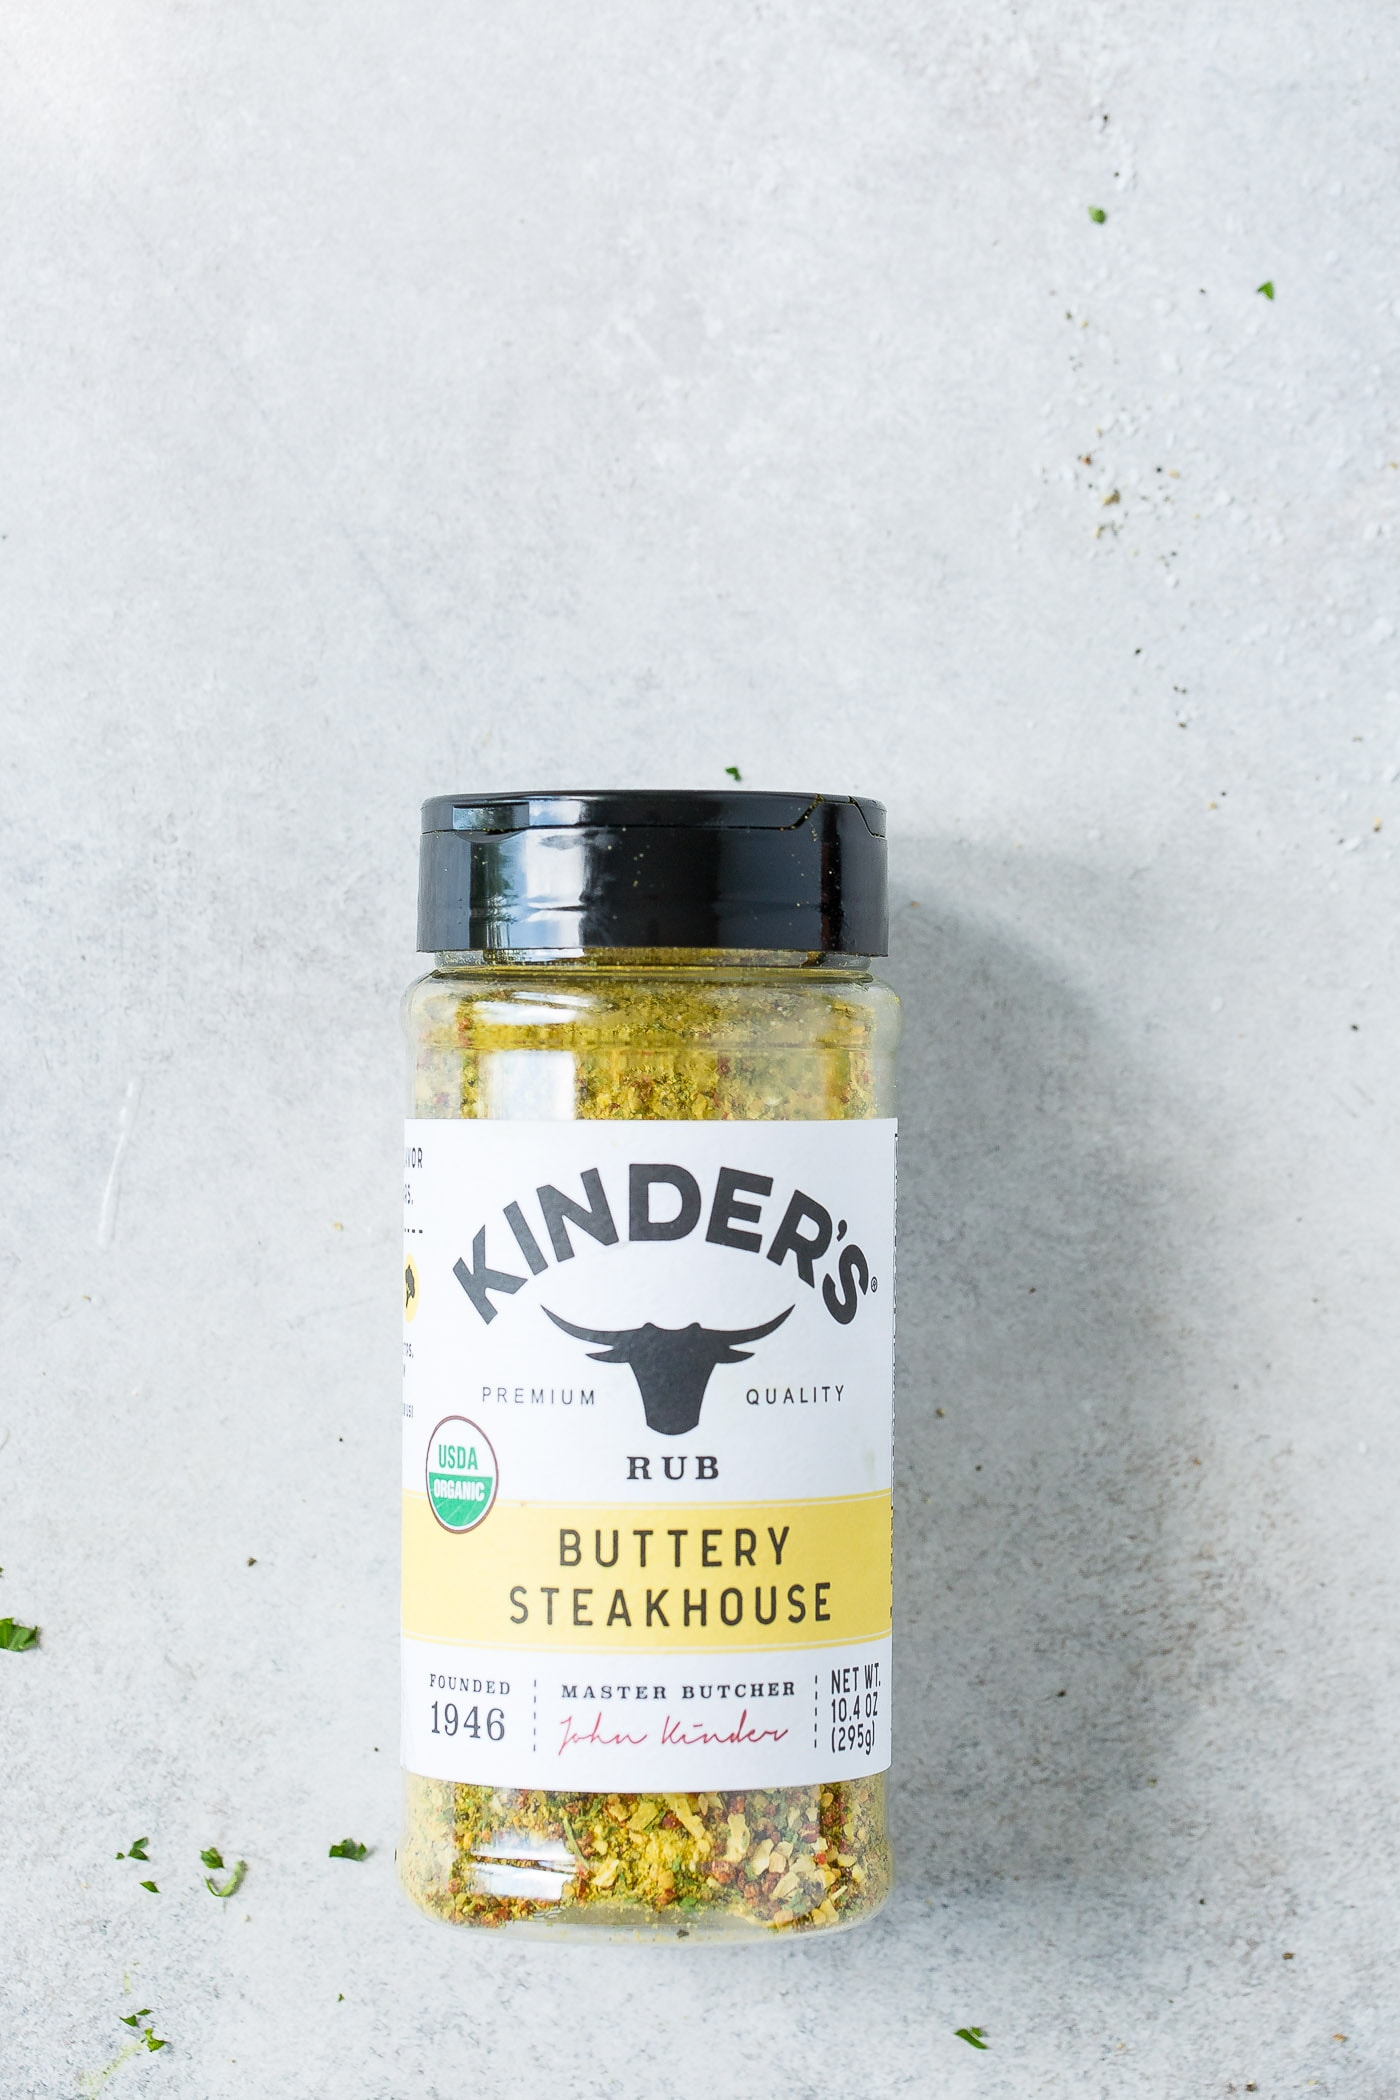 a photo of a container of Kinder's Buttery Steakhouse rub sitting on the counter